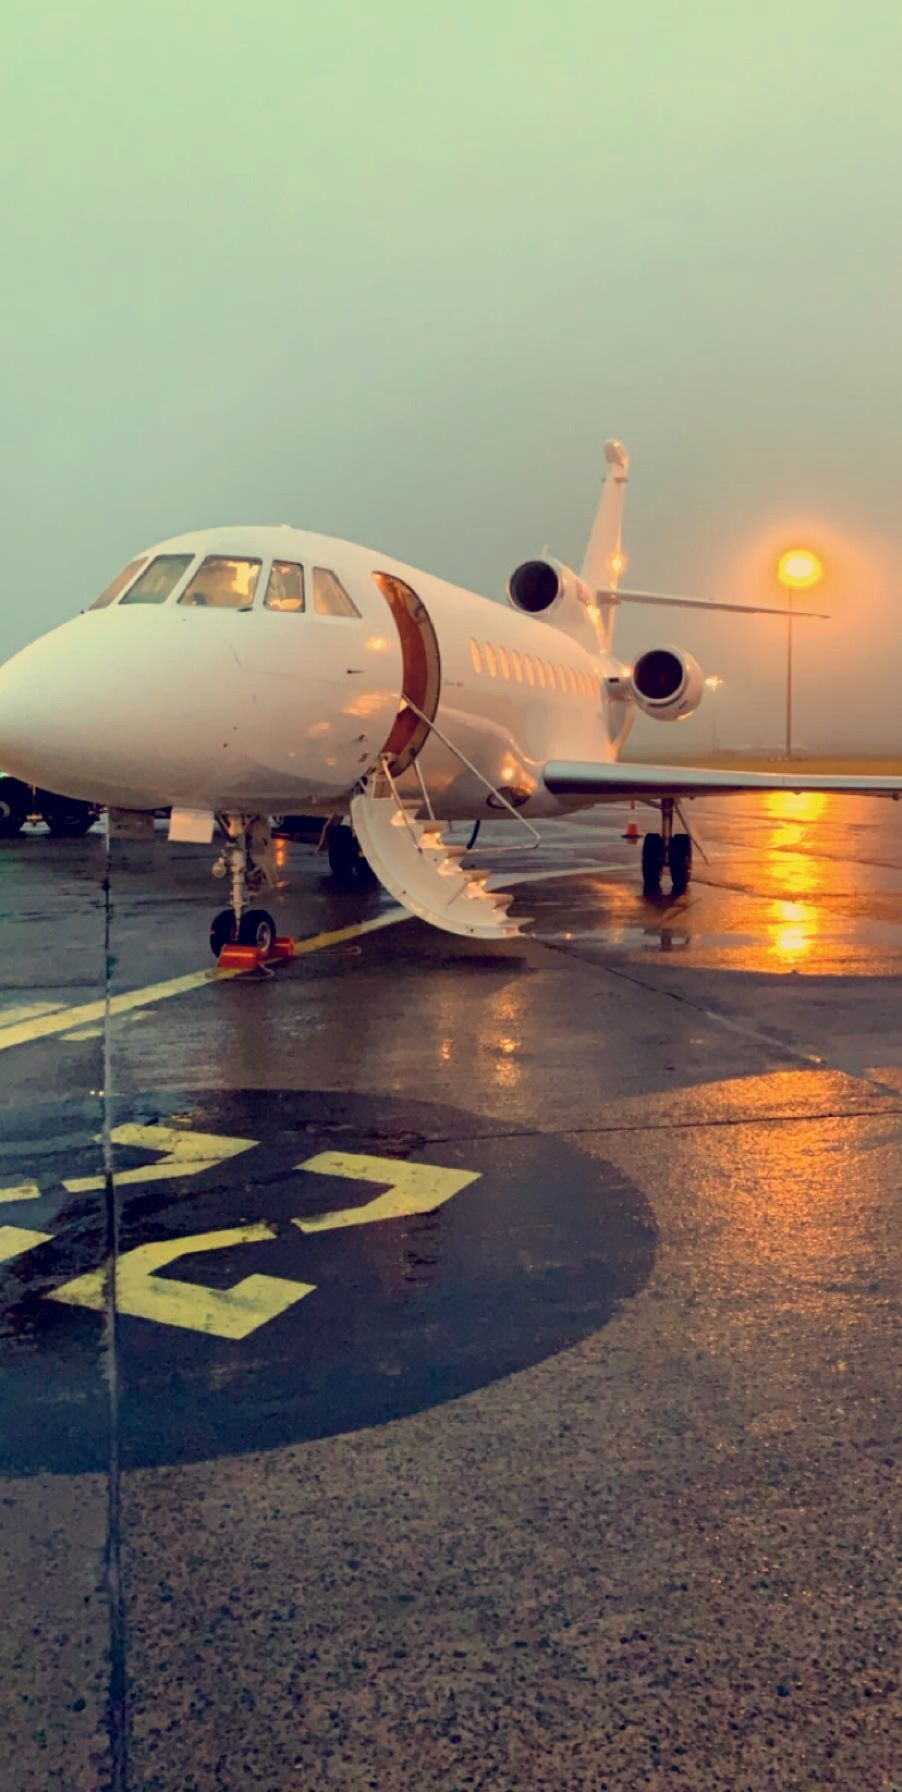 Want to own your own private jet? Take into account how